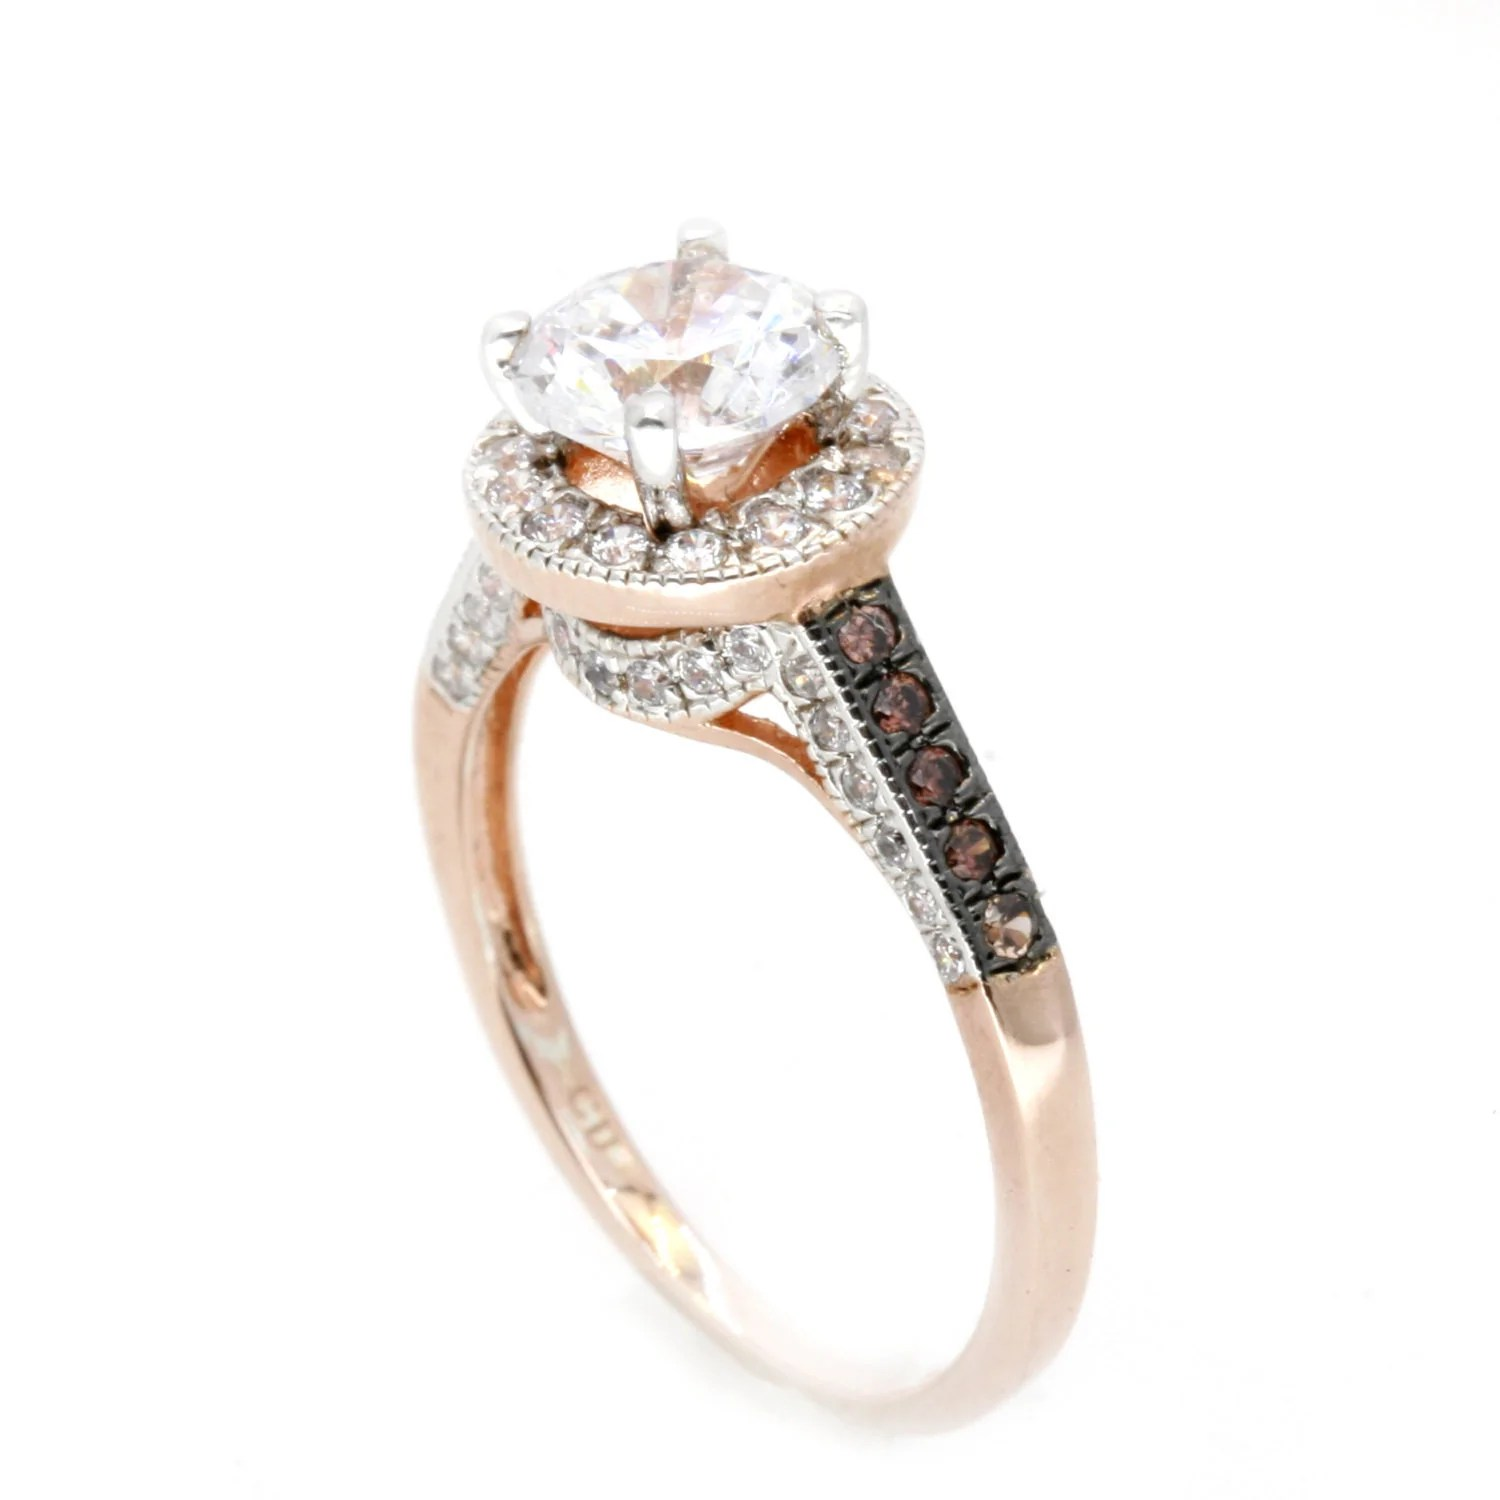 moissanite engagement ring unique 1 carat floating halo rose gold white chocolate color diamonds forever brilliant moissanite chocolate diamond wedding rings Moissanite Engagement Ring Unique 1 Carat Floating Halo Rose Gold White Chocolate Color